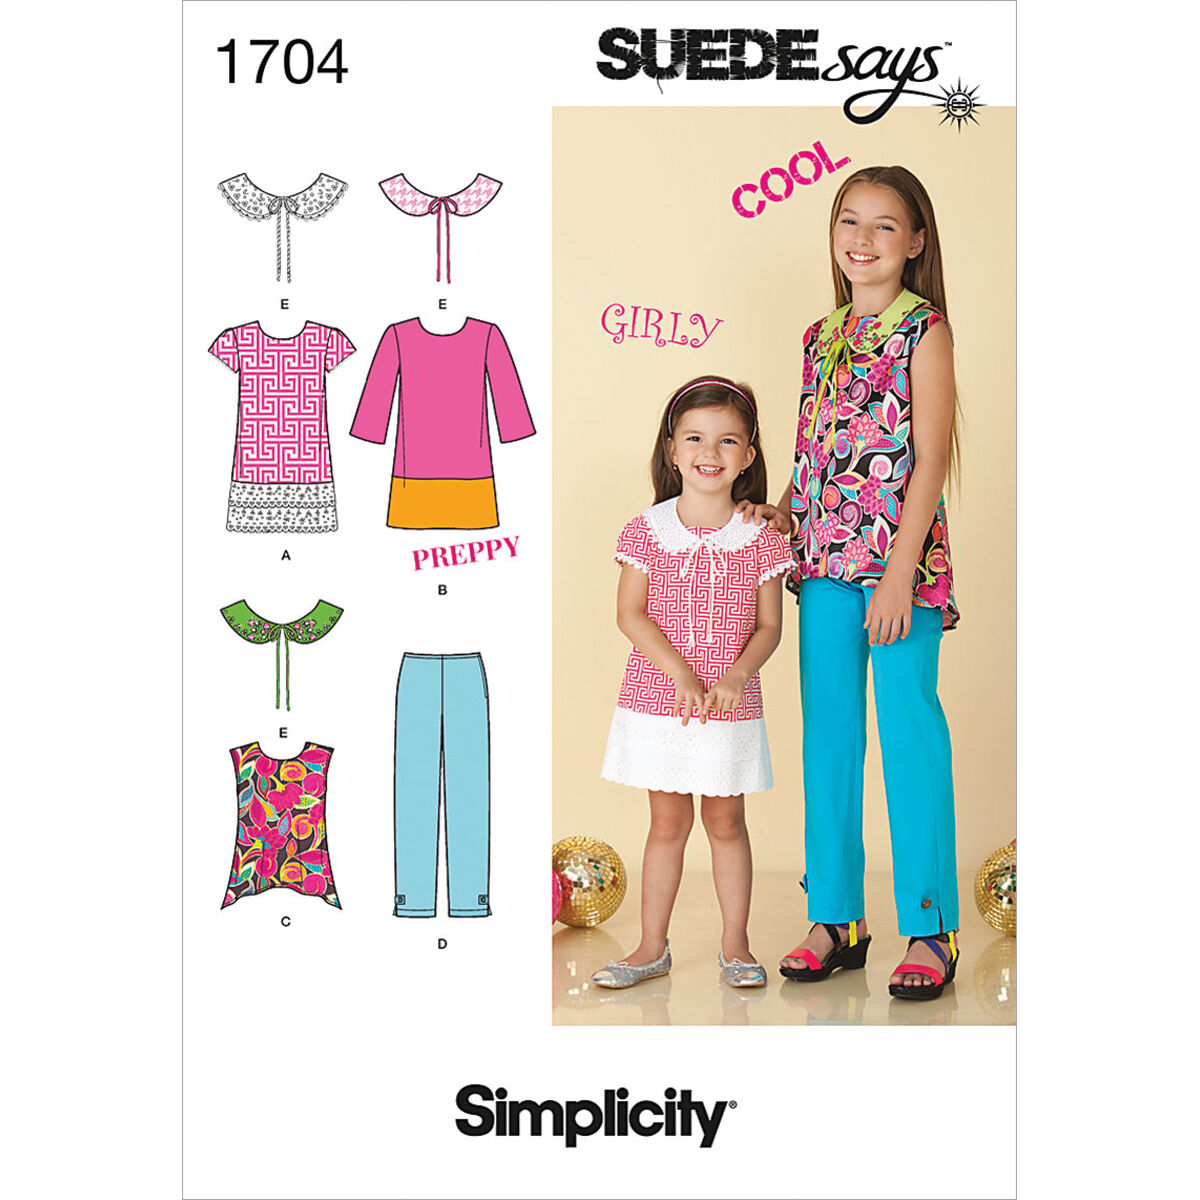 60s 70s Kids Costumes & Clothing Girls & Boys Simplicity Pattern 1704K5 7 - 8 - 10 - 12 - - Child Girl Sportswea $15.95 AT vintagedancer.com